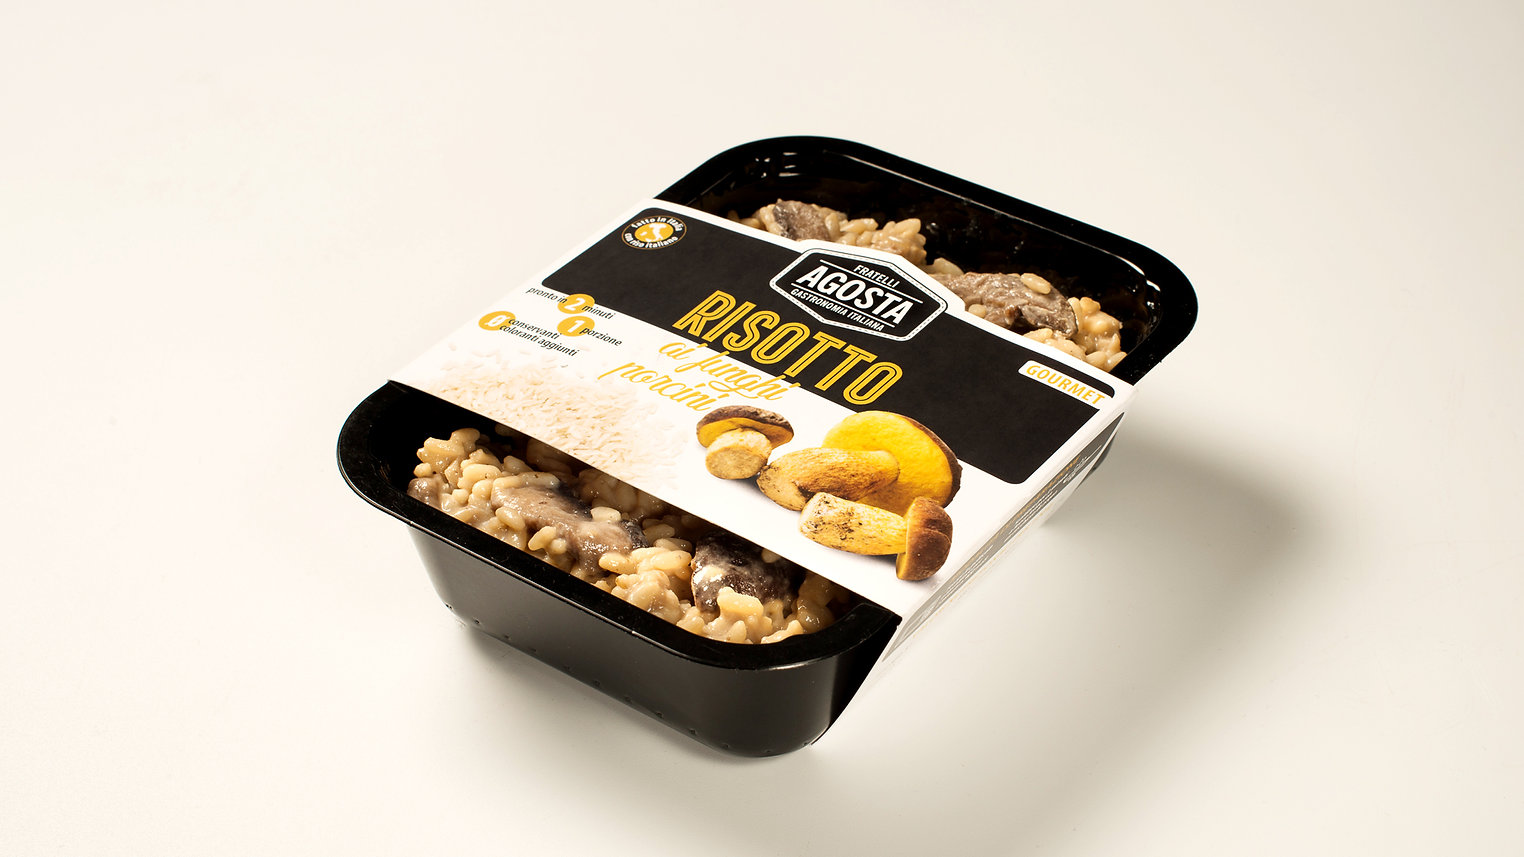 AGOSTA - Risotto Pack.jpg